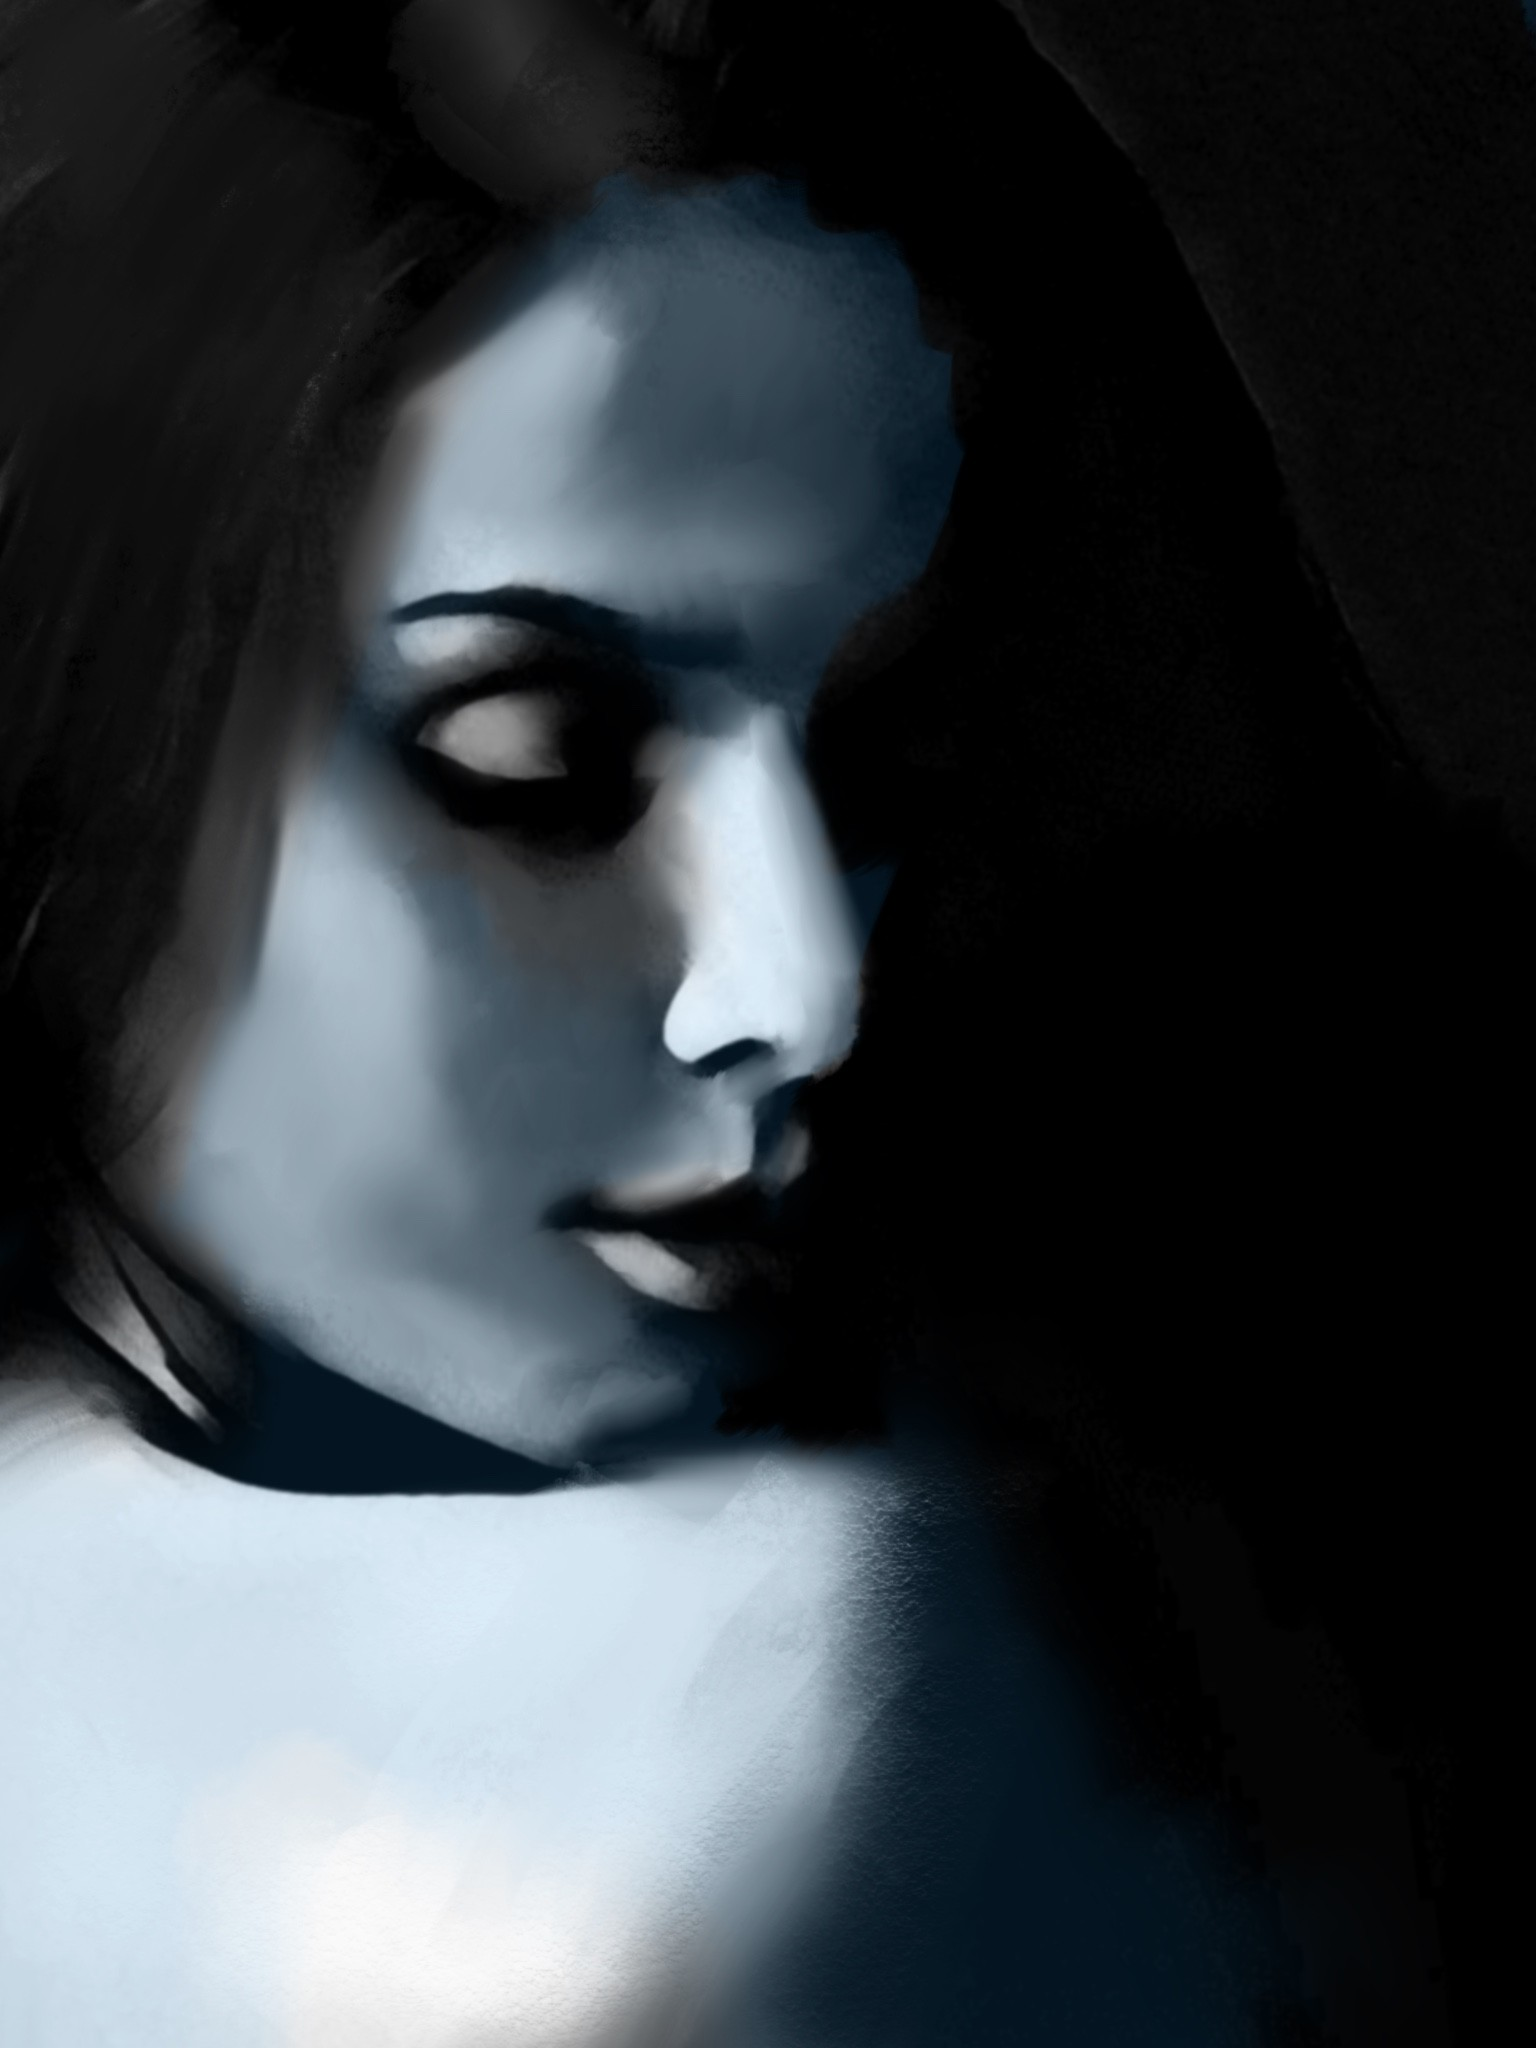 Original digital painting